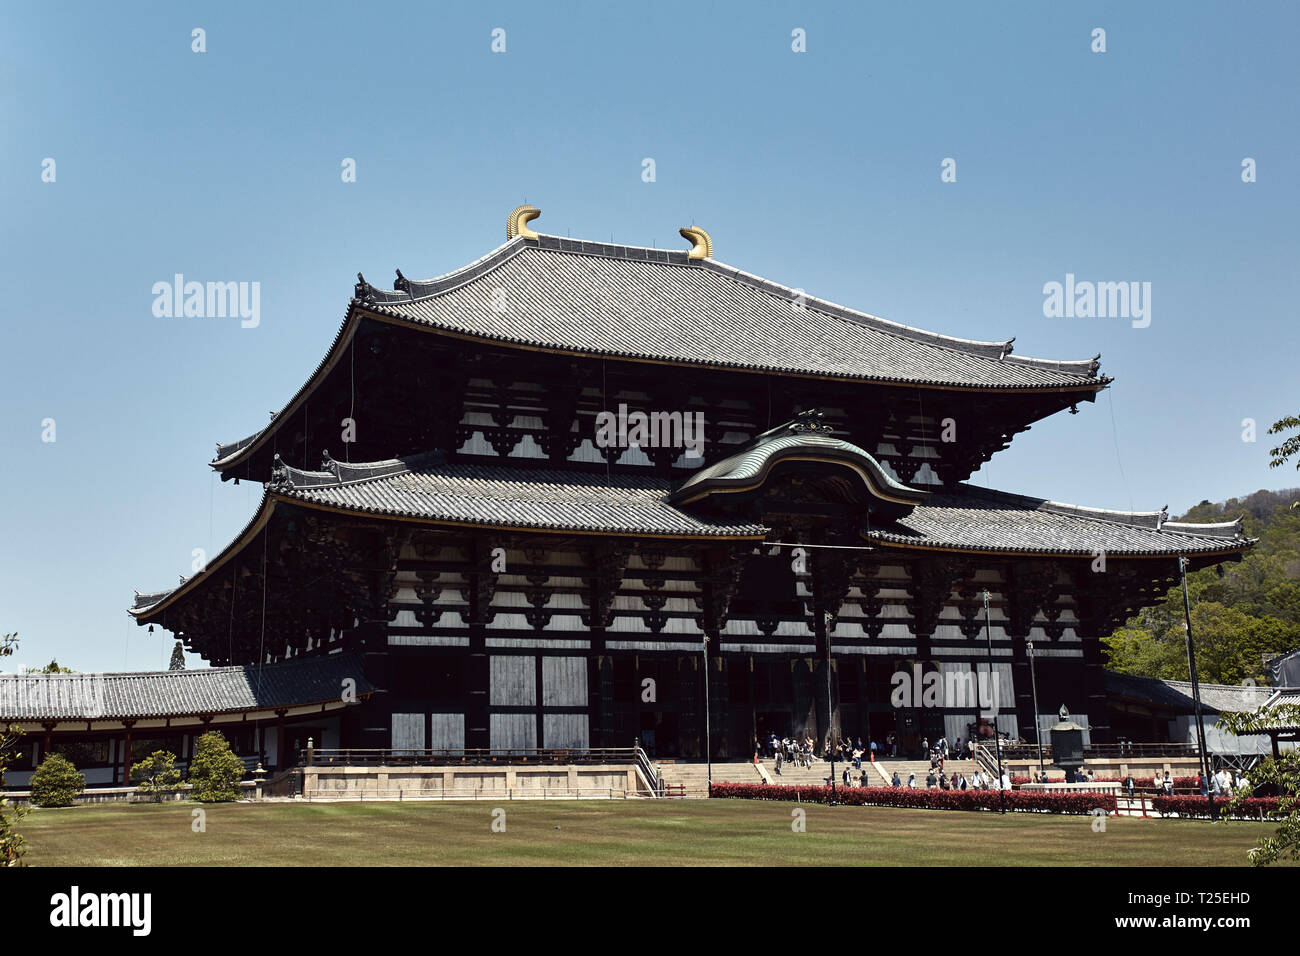 View of Todaiji Temple exterior from a distance in Nara, Japan. - Stock Image